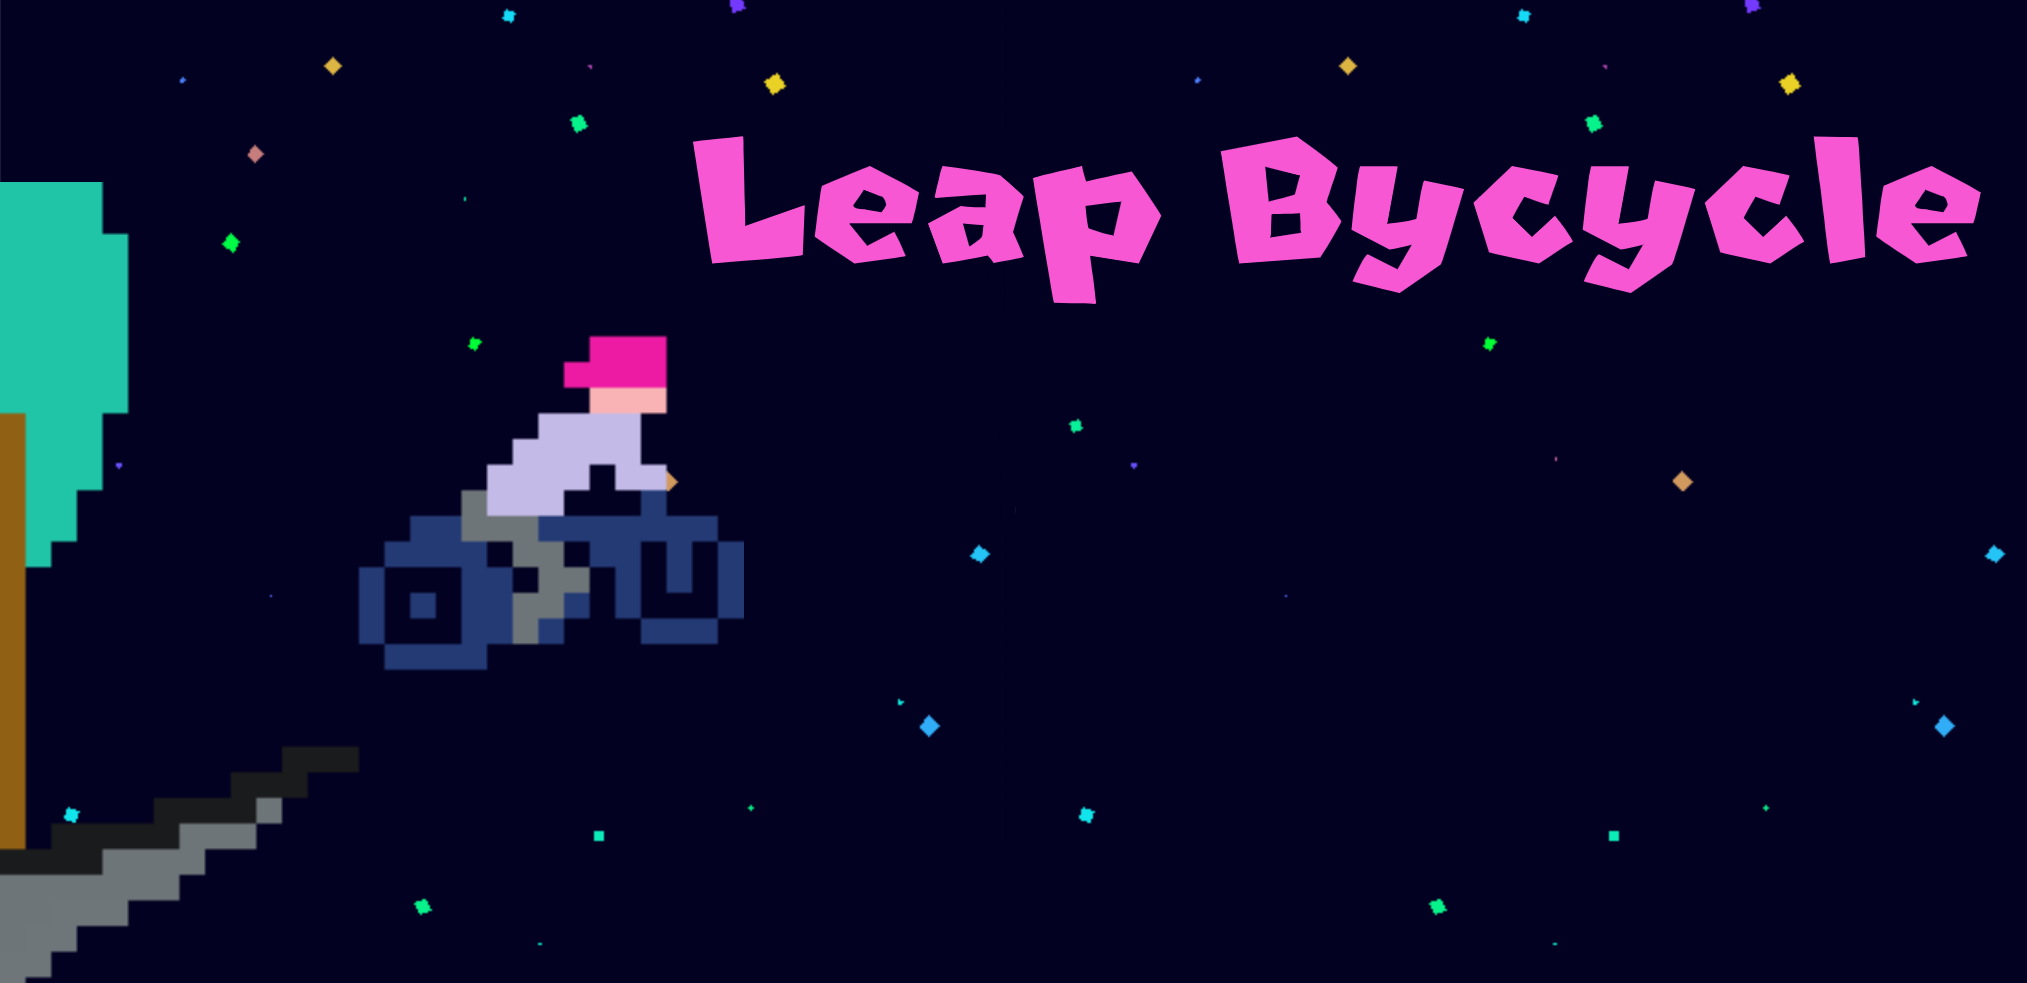 LeapBycycle